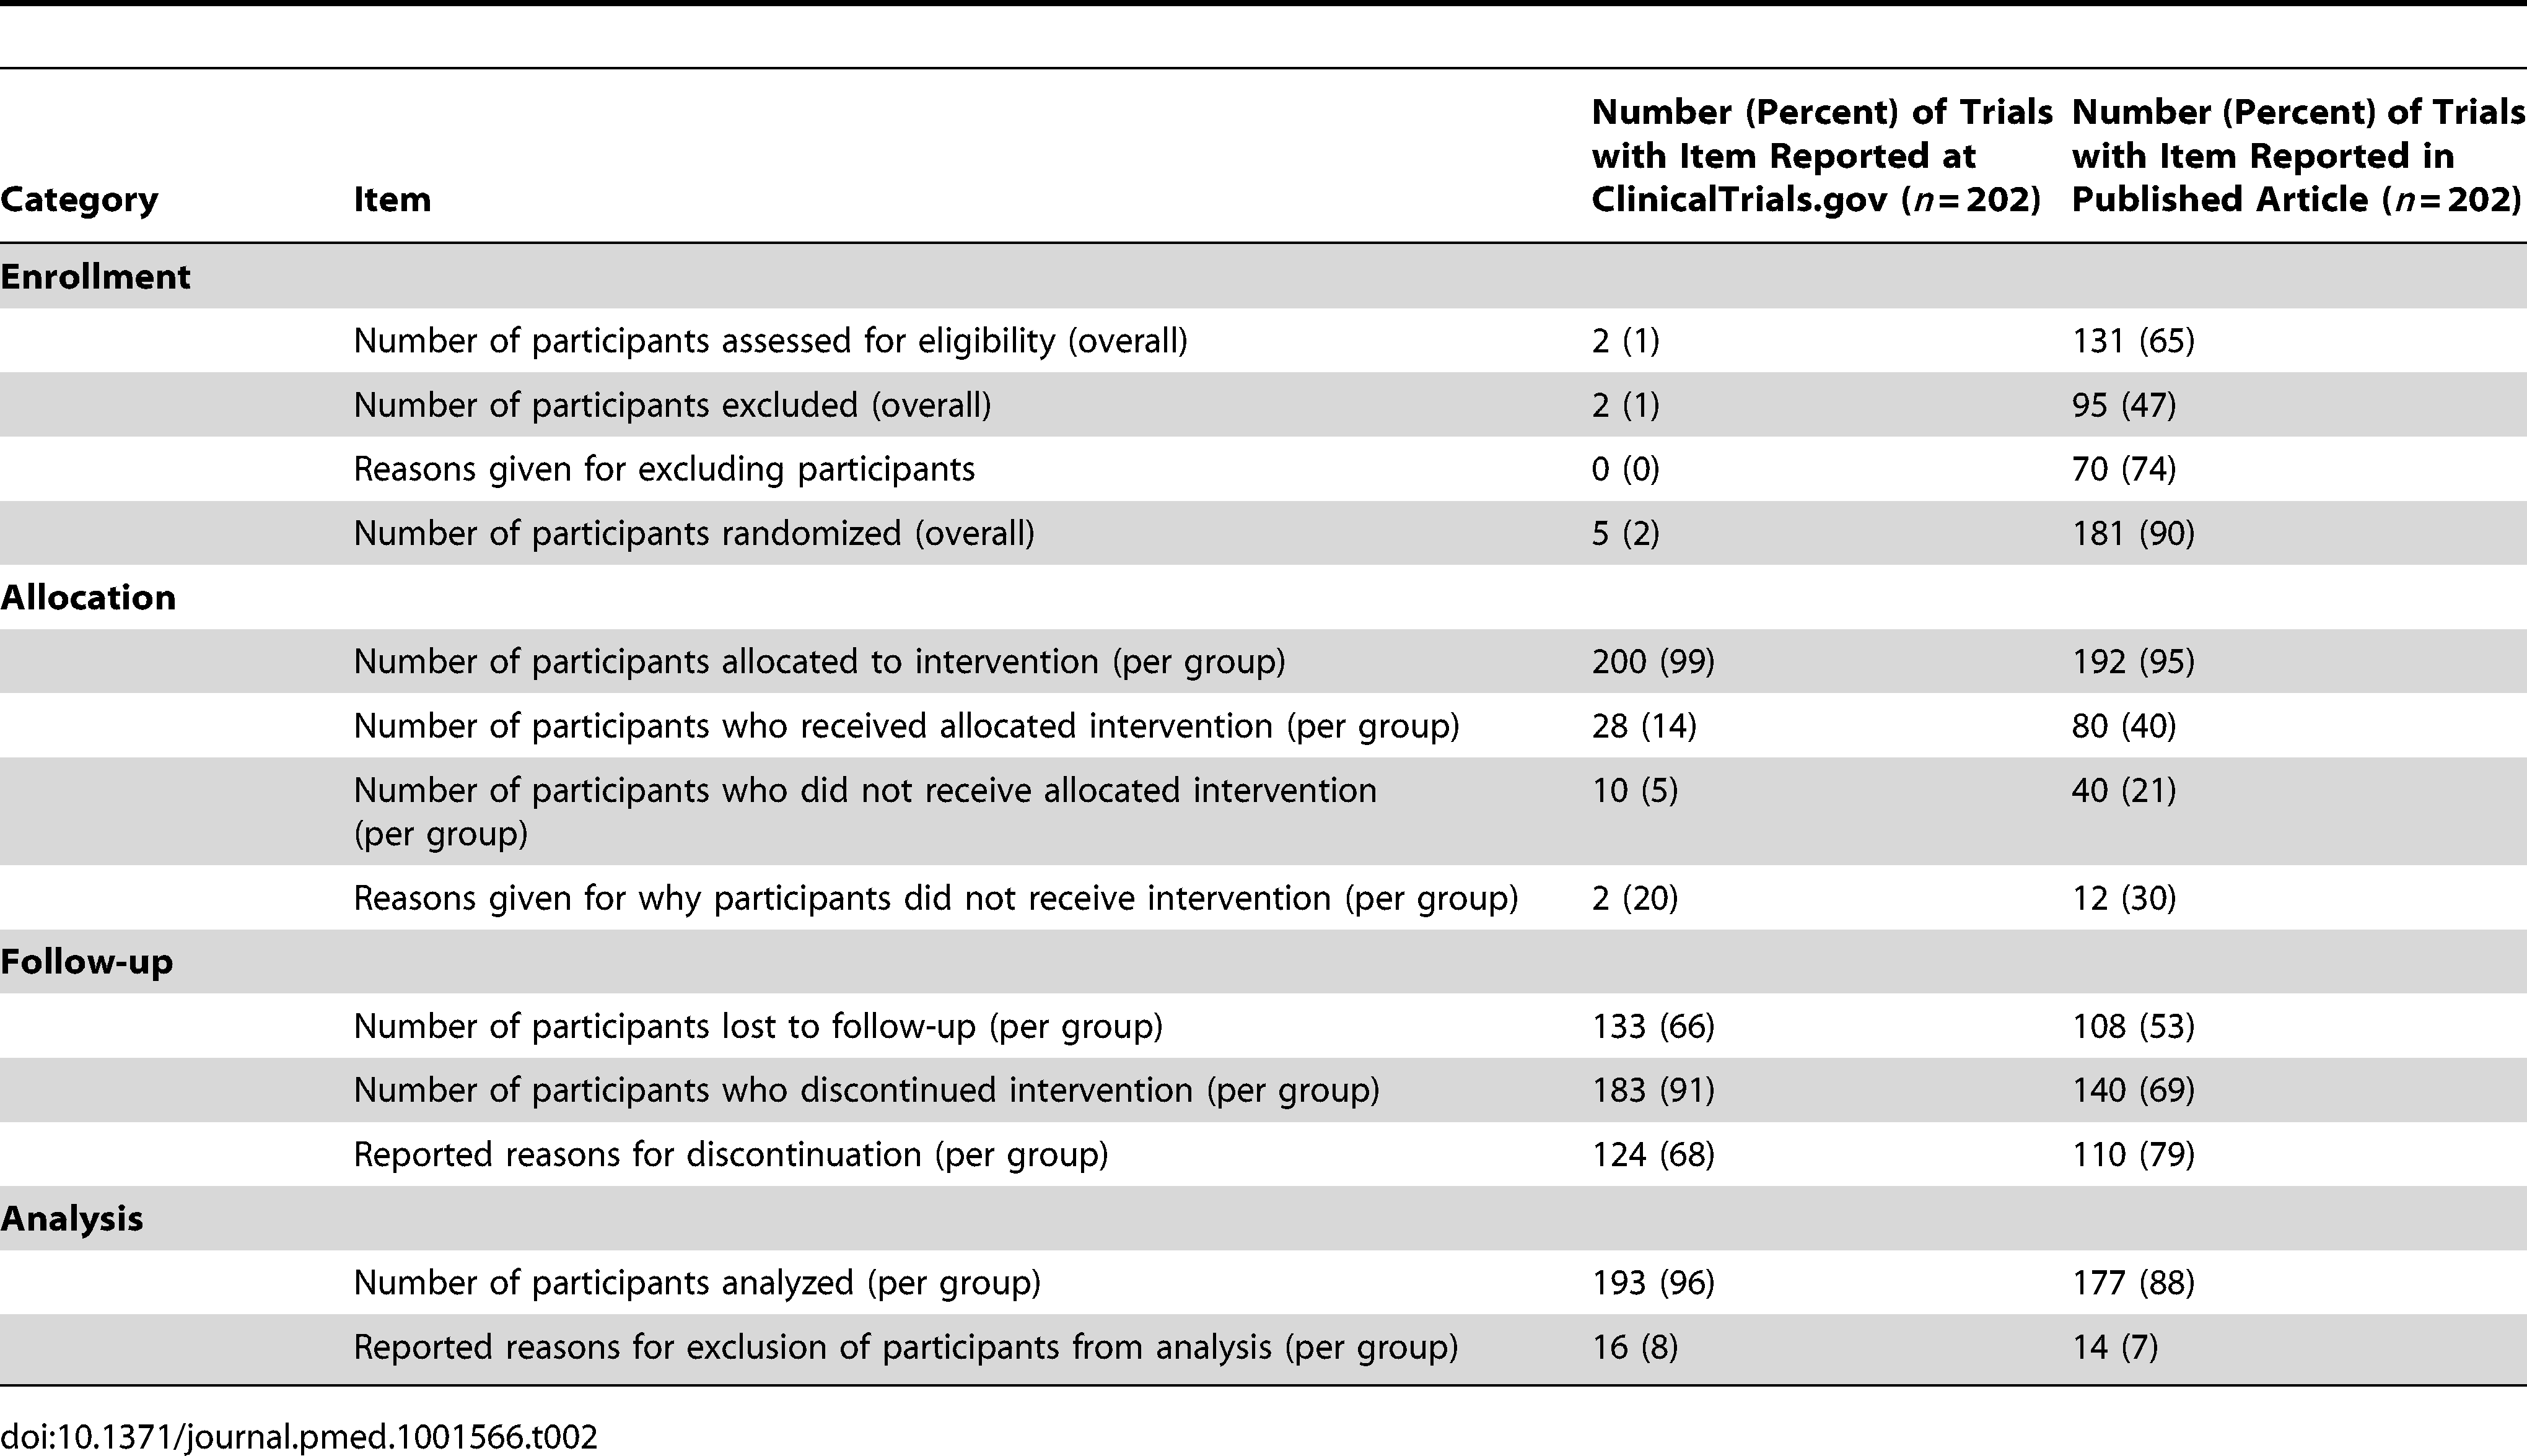 Reporting of items concerning the flow of participants during the trial at ClinicalTrials.gov and in published articles.